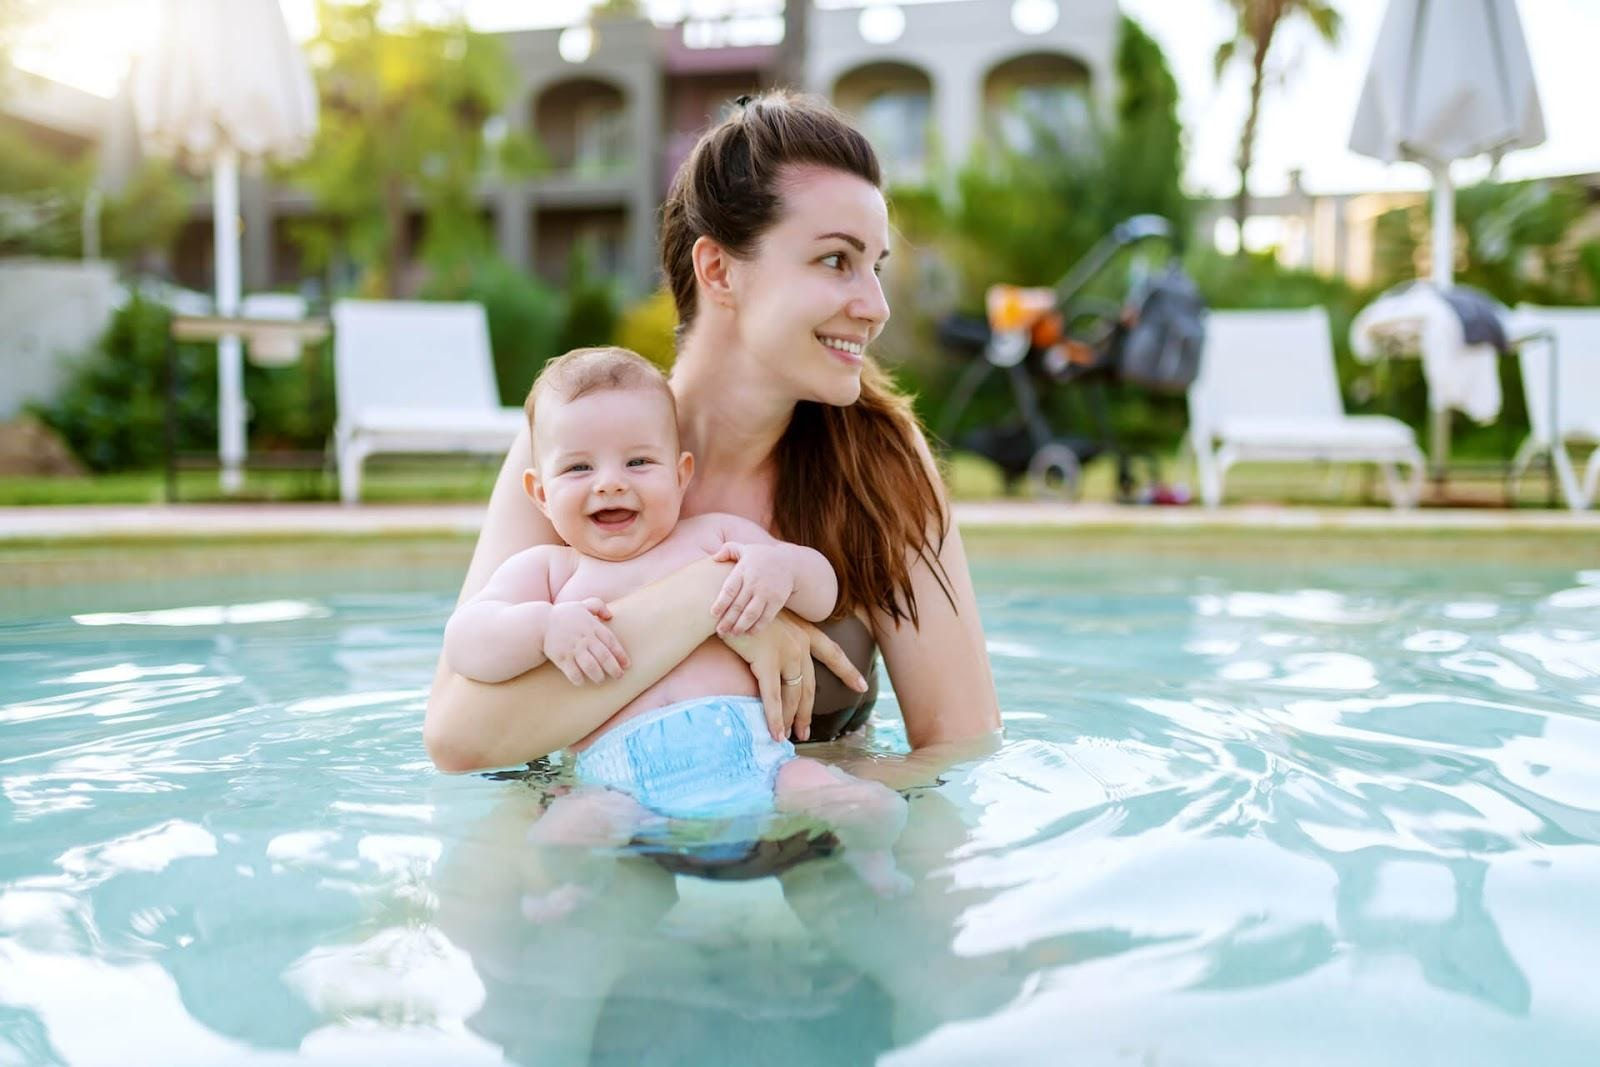 Mom holding young son with swim diapers in a swimming pool